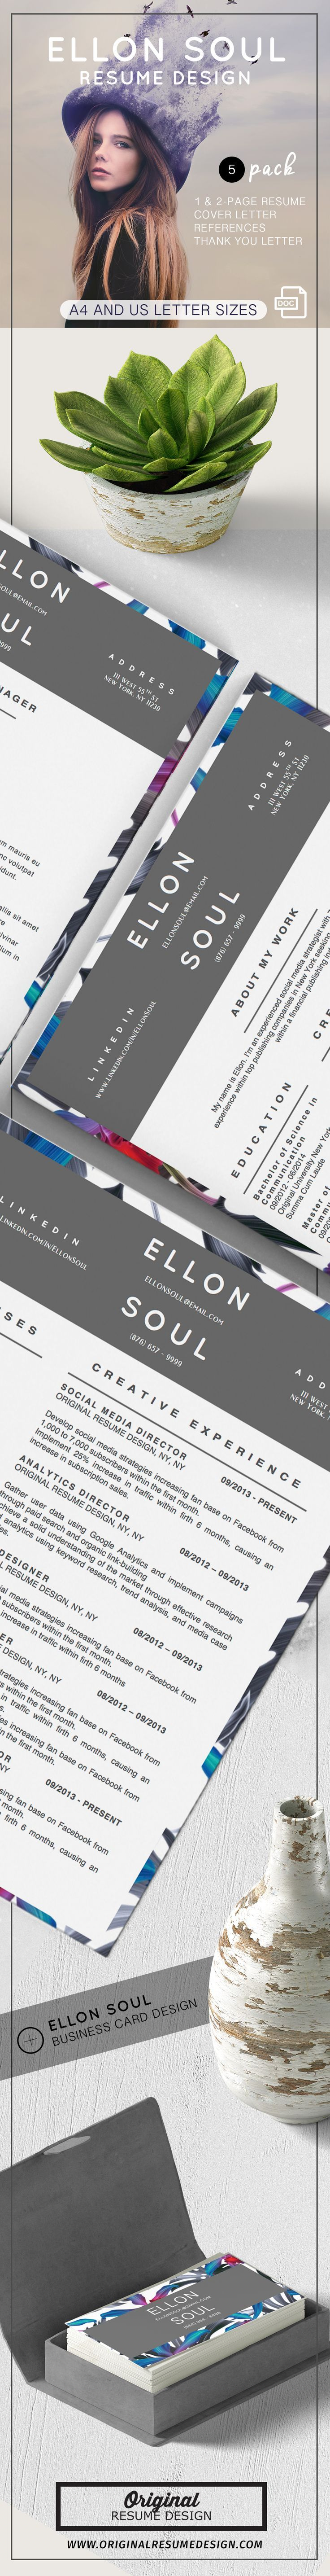 impressive objective for resume%0A Beautiful and modern resume design  Ellon Soul features   templates for  Microsoft Word